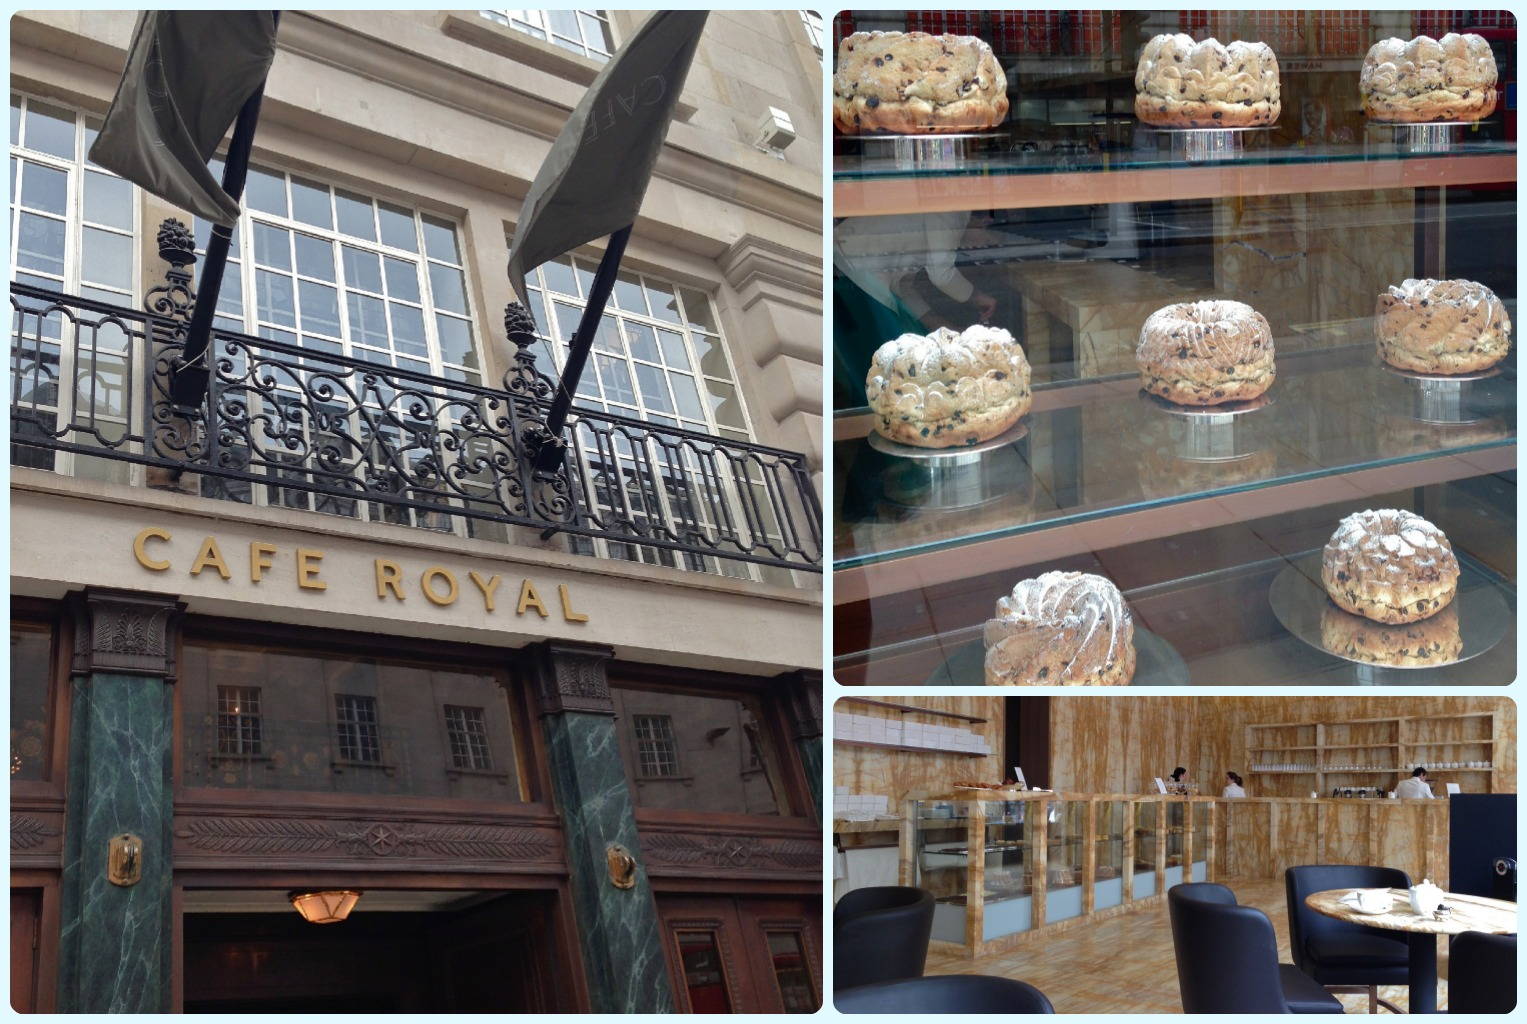 Dishoom covent garden london dollybakes - The Cafe At Cafe Royal London